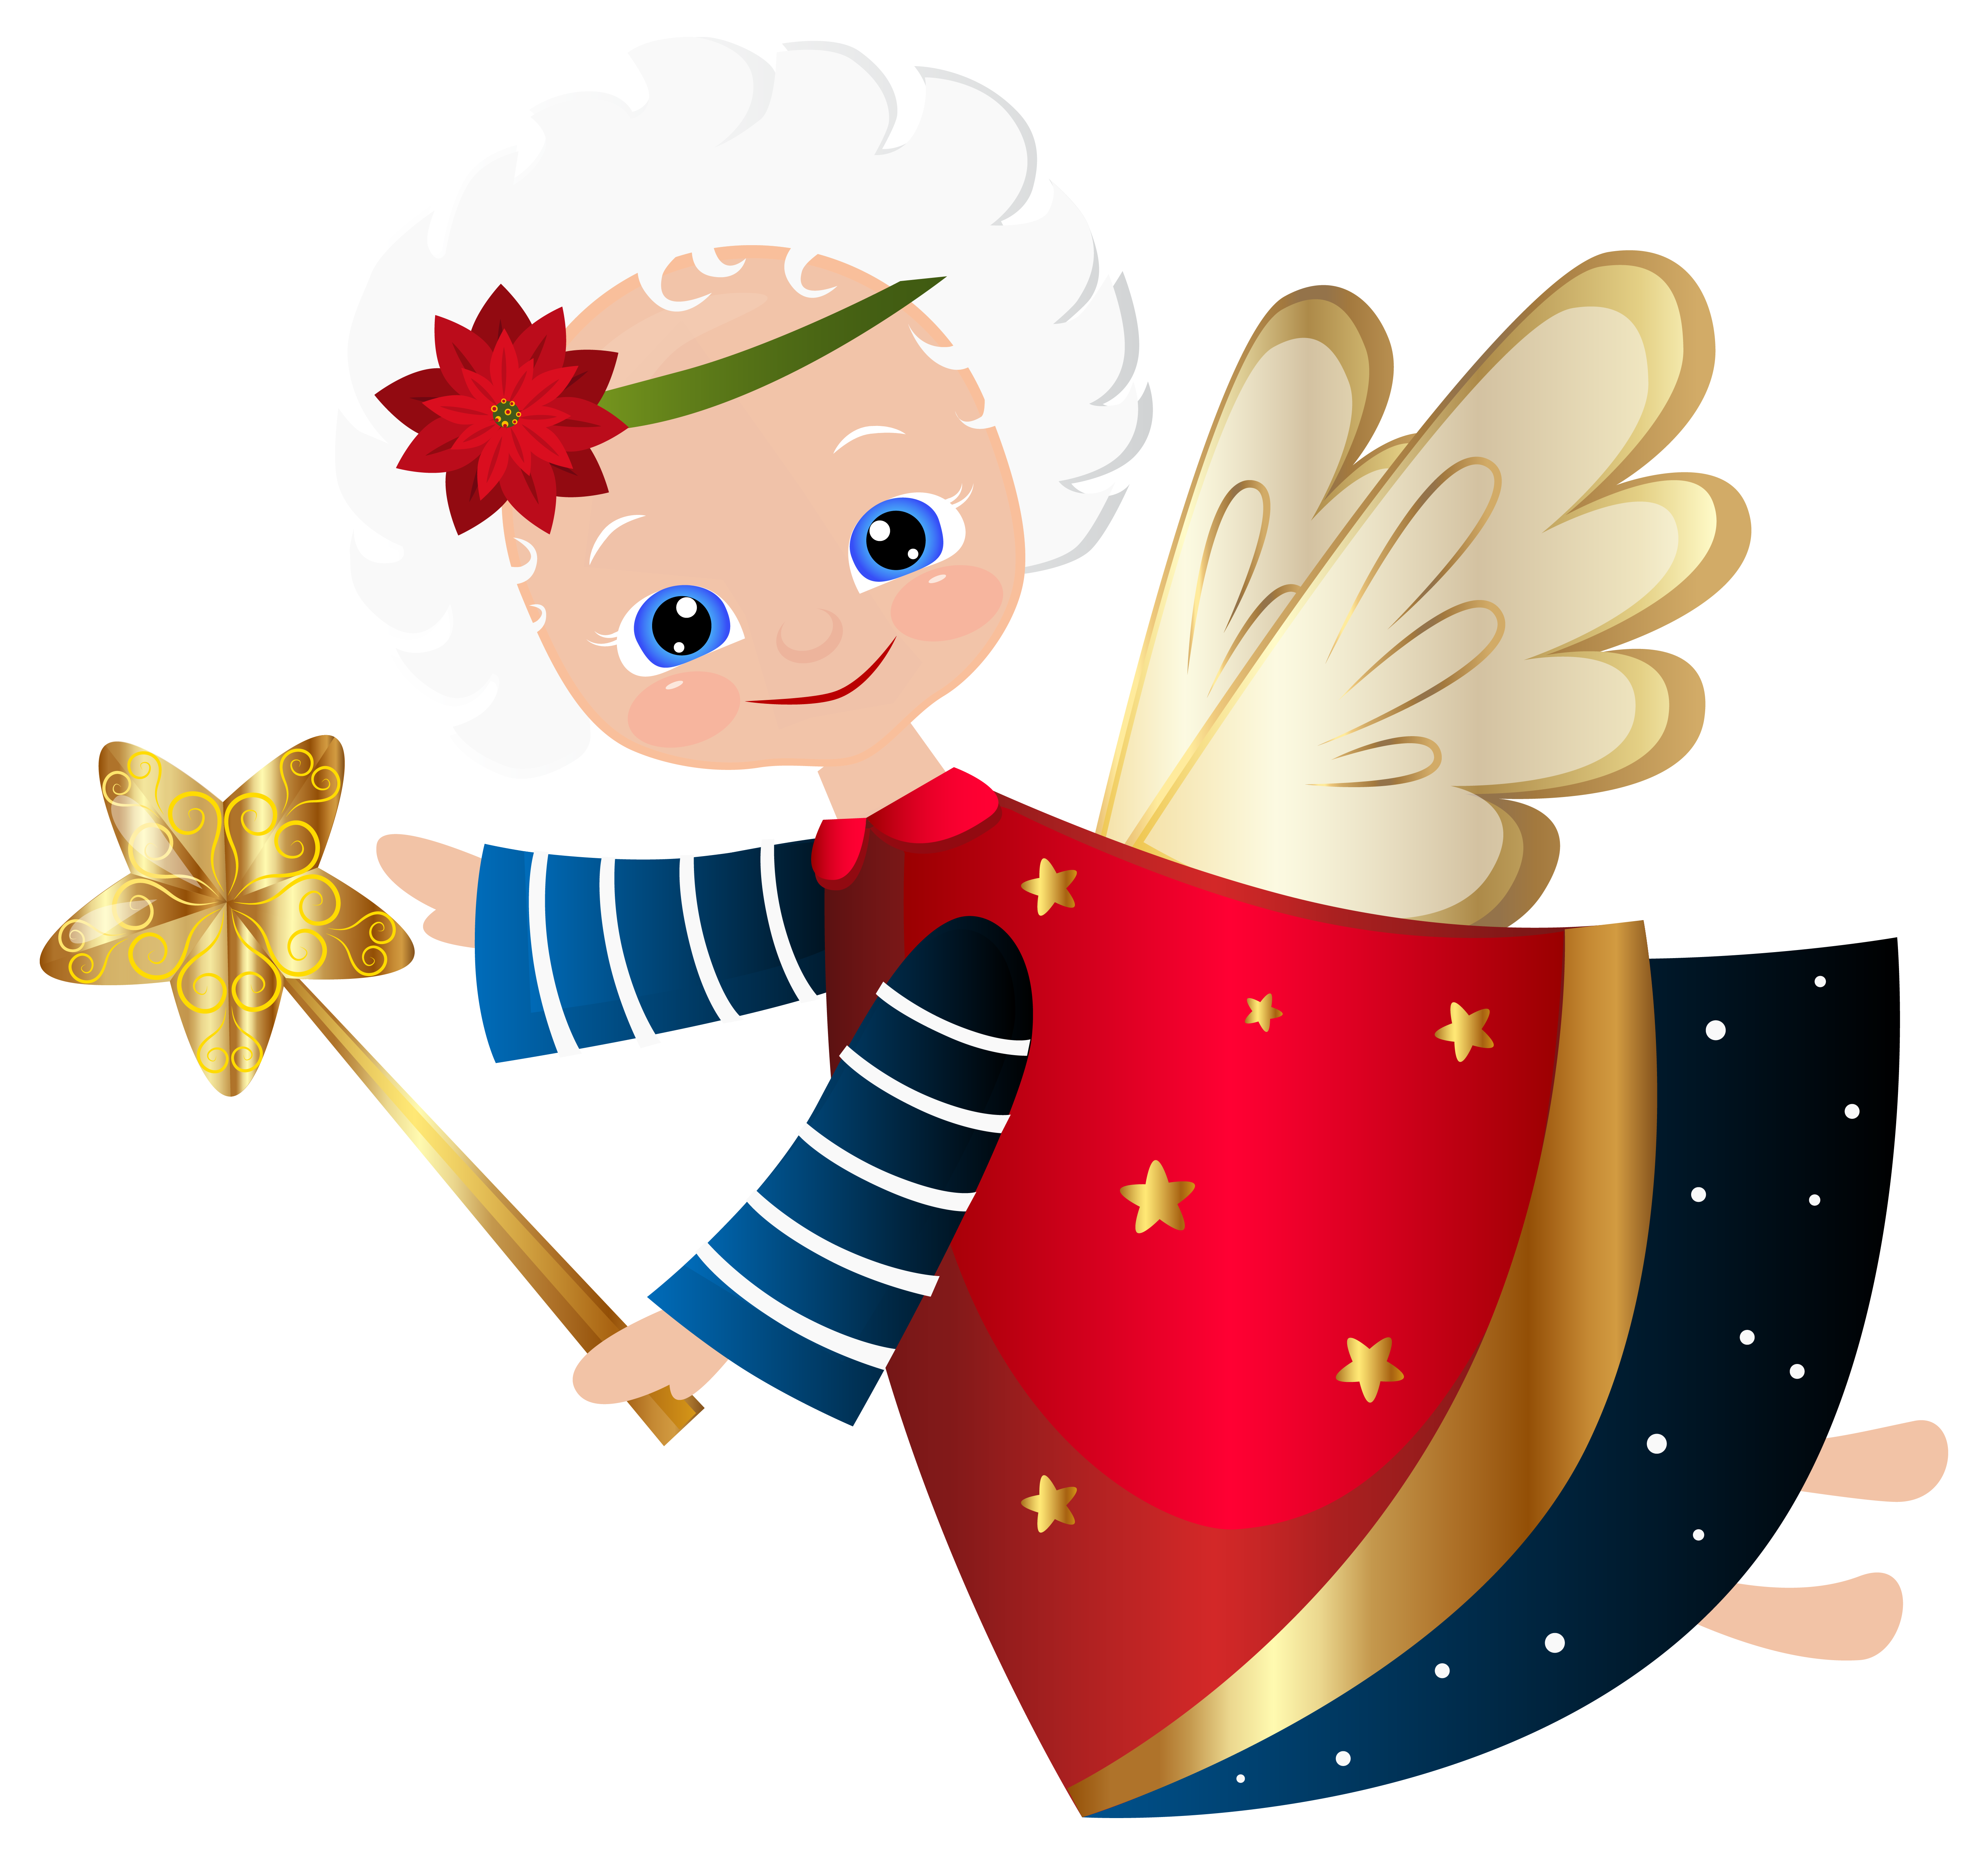 Angel definition clipart image royalty free library Clipart definition study, Clipart definition study Transparent FREE ... image royalty free library